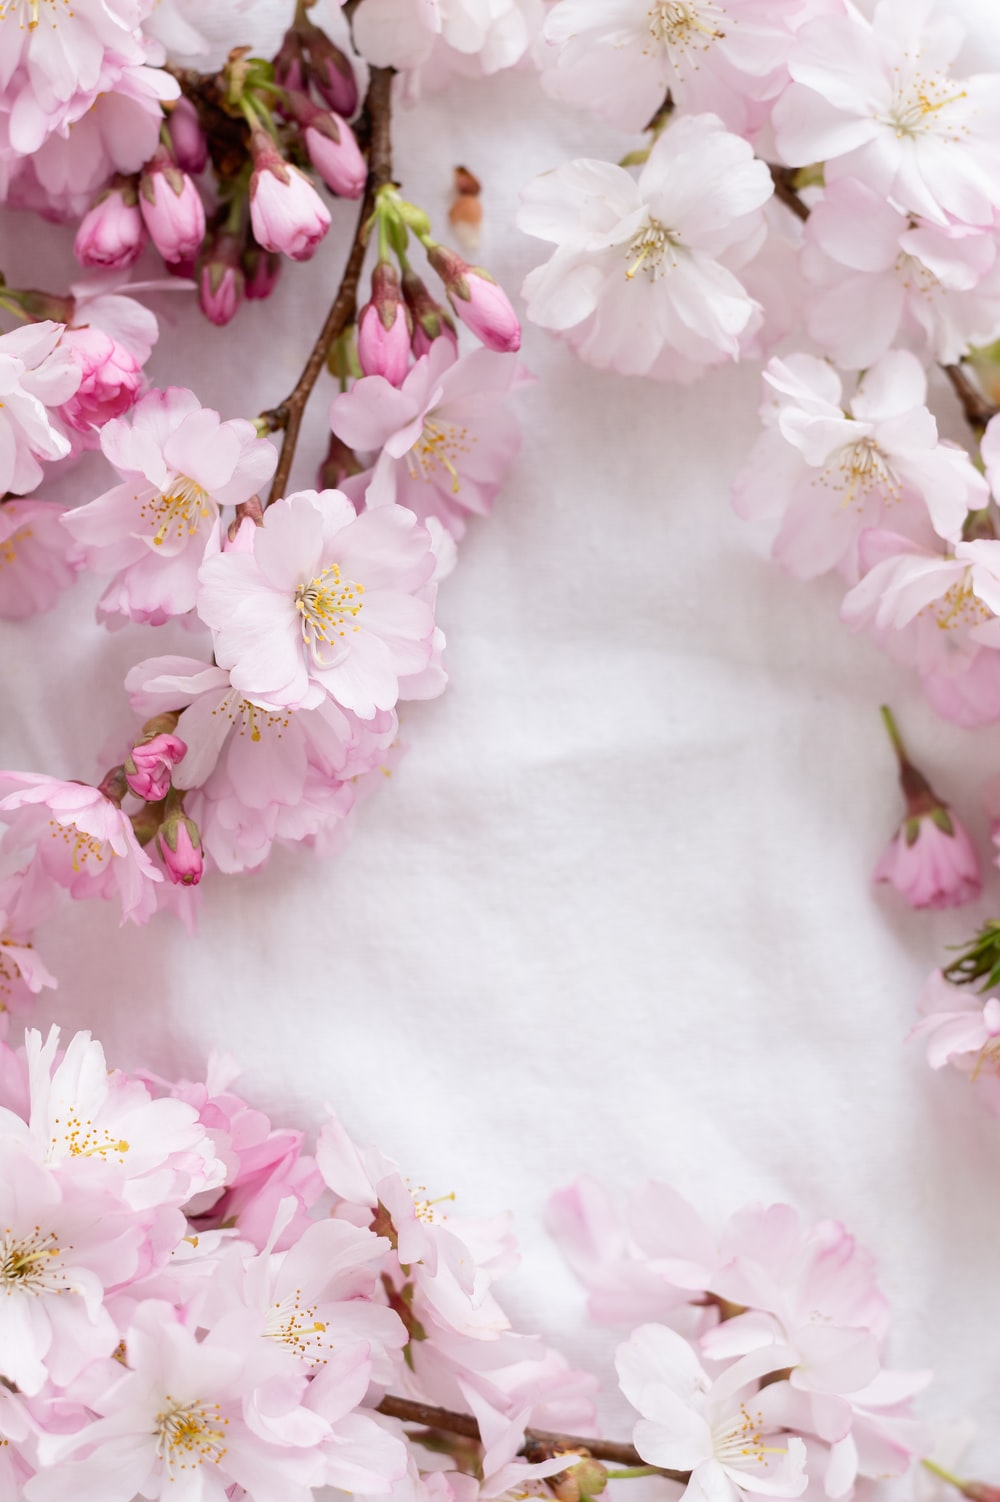 pink and white flowers on white textile